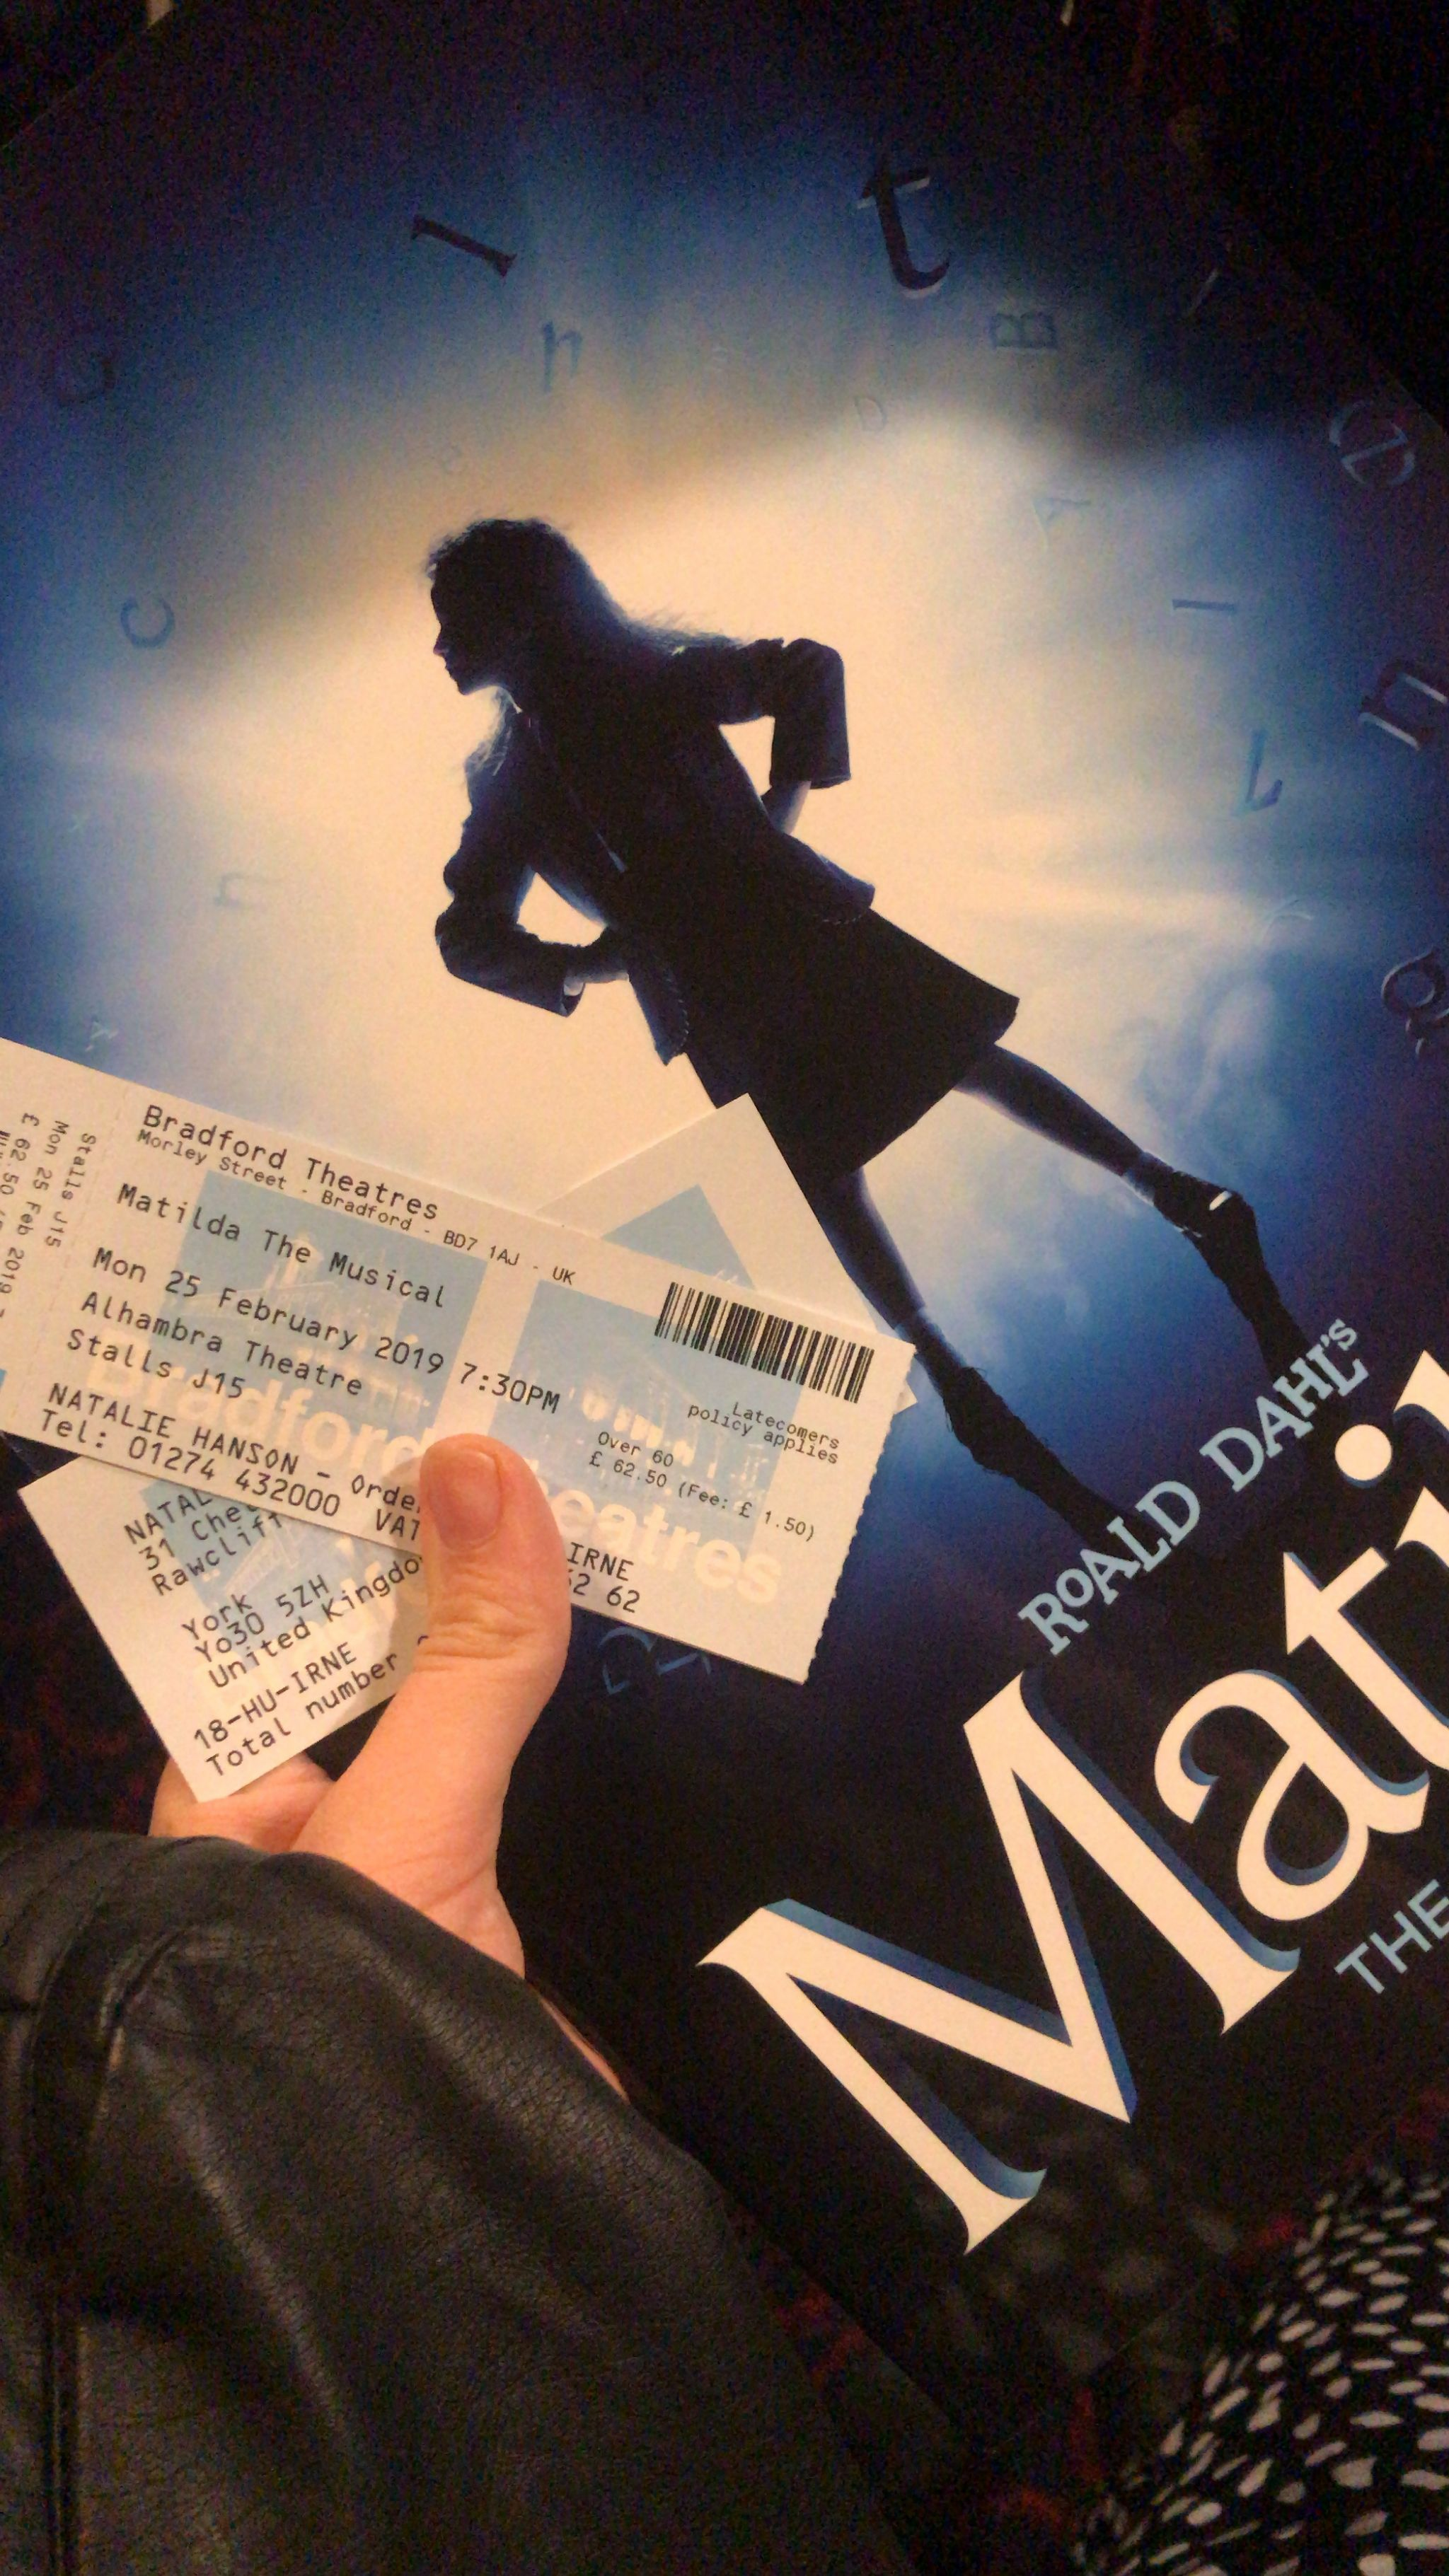 Matilda The Musical programme and tickets